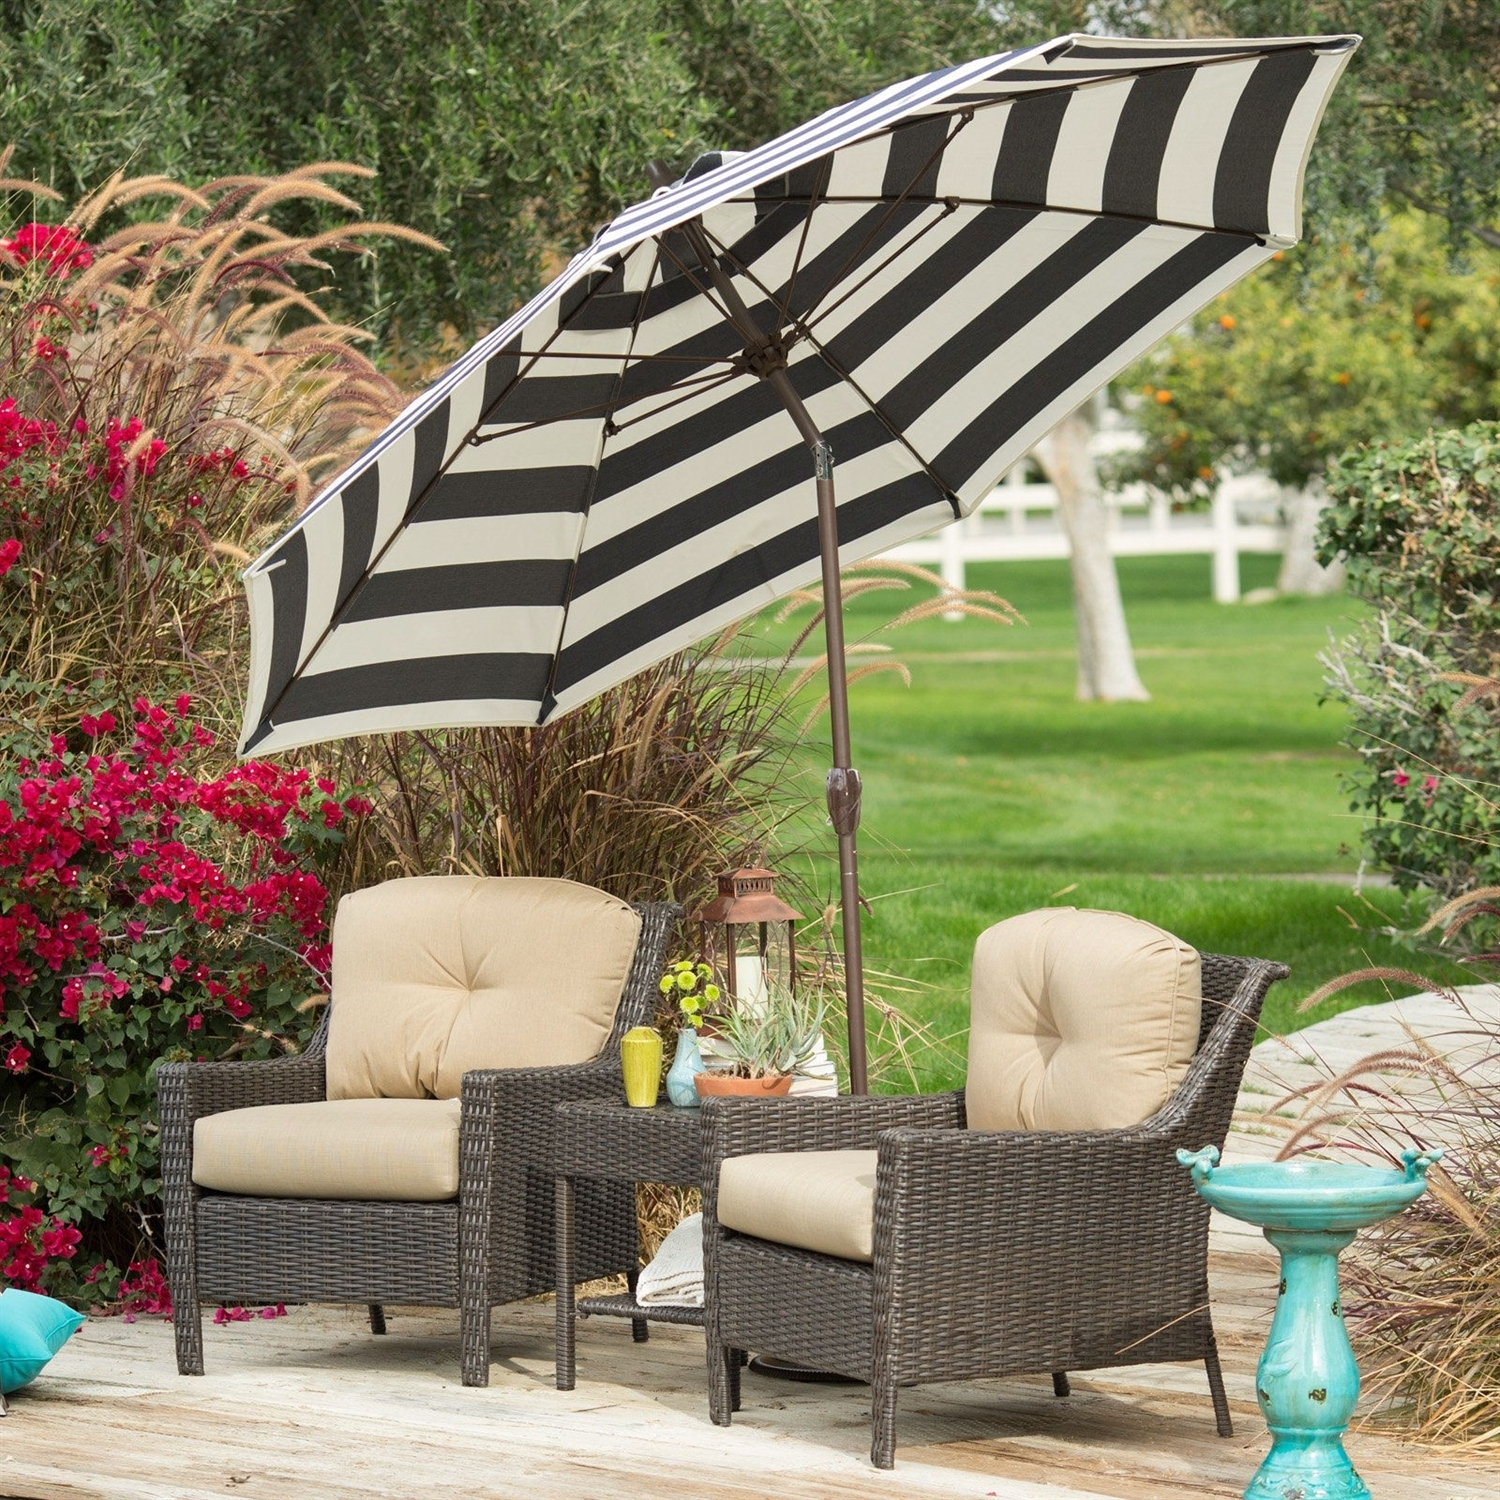 9 Ft Patio Umbrellas With Regard To Recent Stylish 9 Ft Market Patio Umbrella With Crank And Tilt In Dark Navy (View 6 of 20)